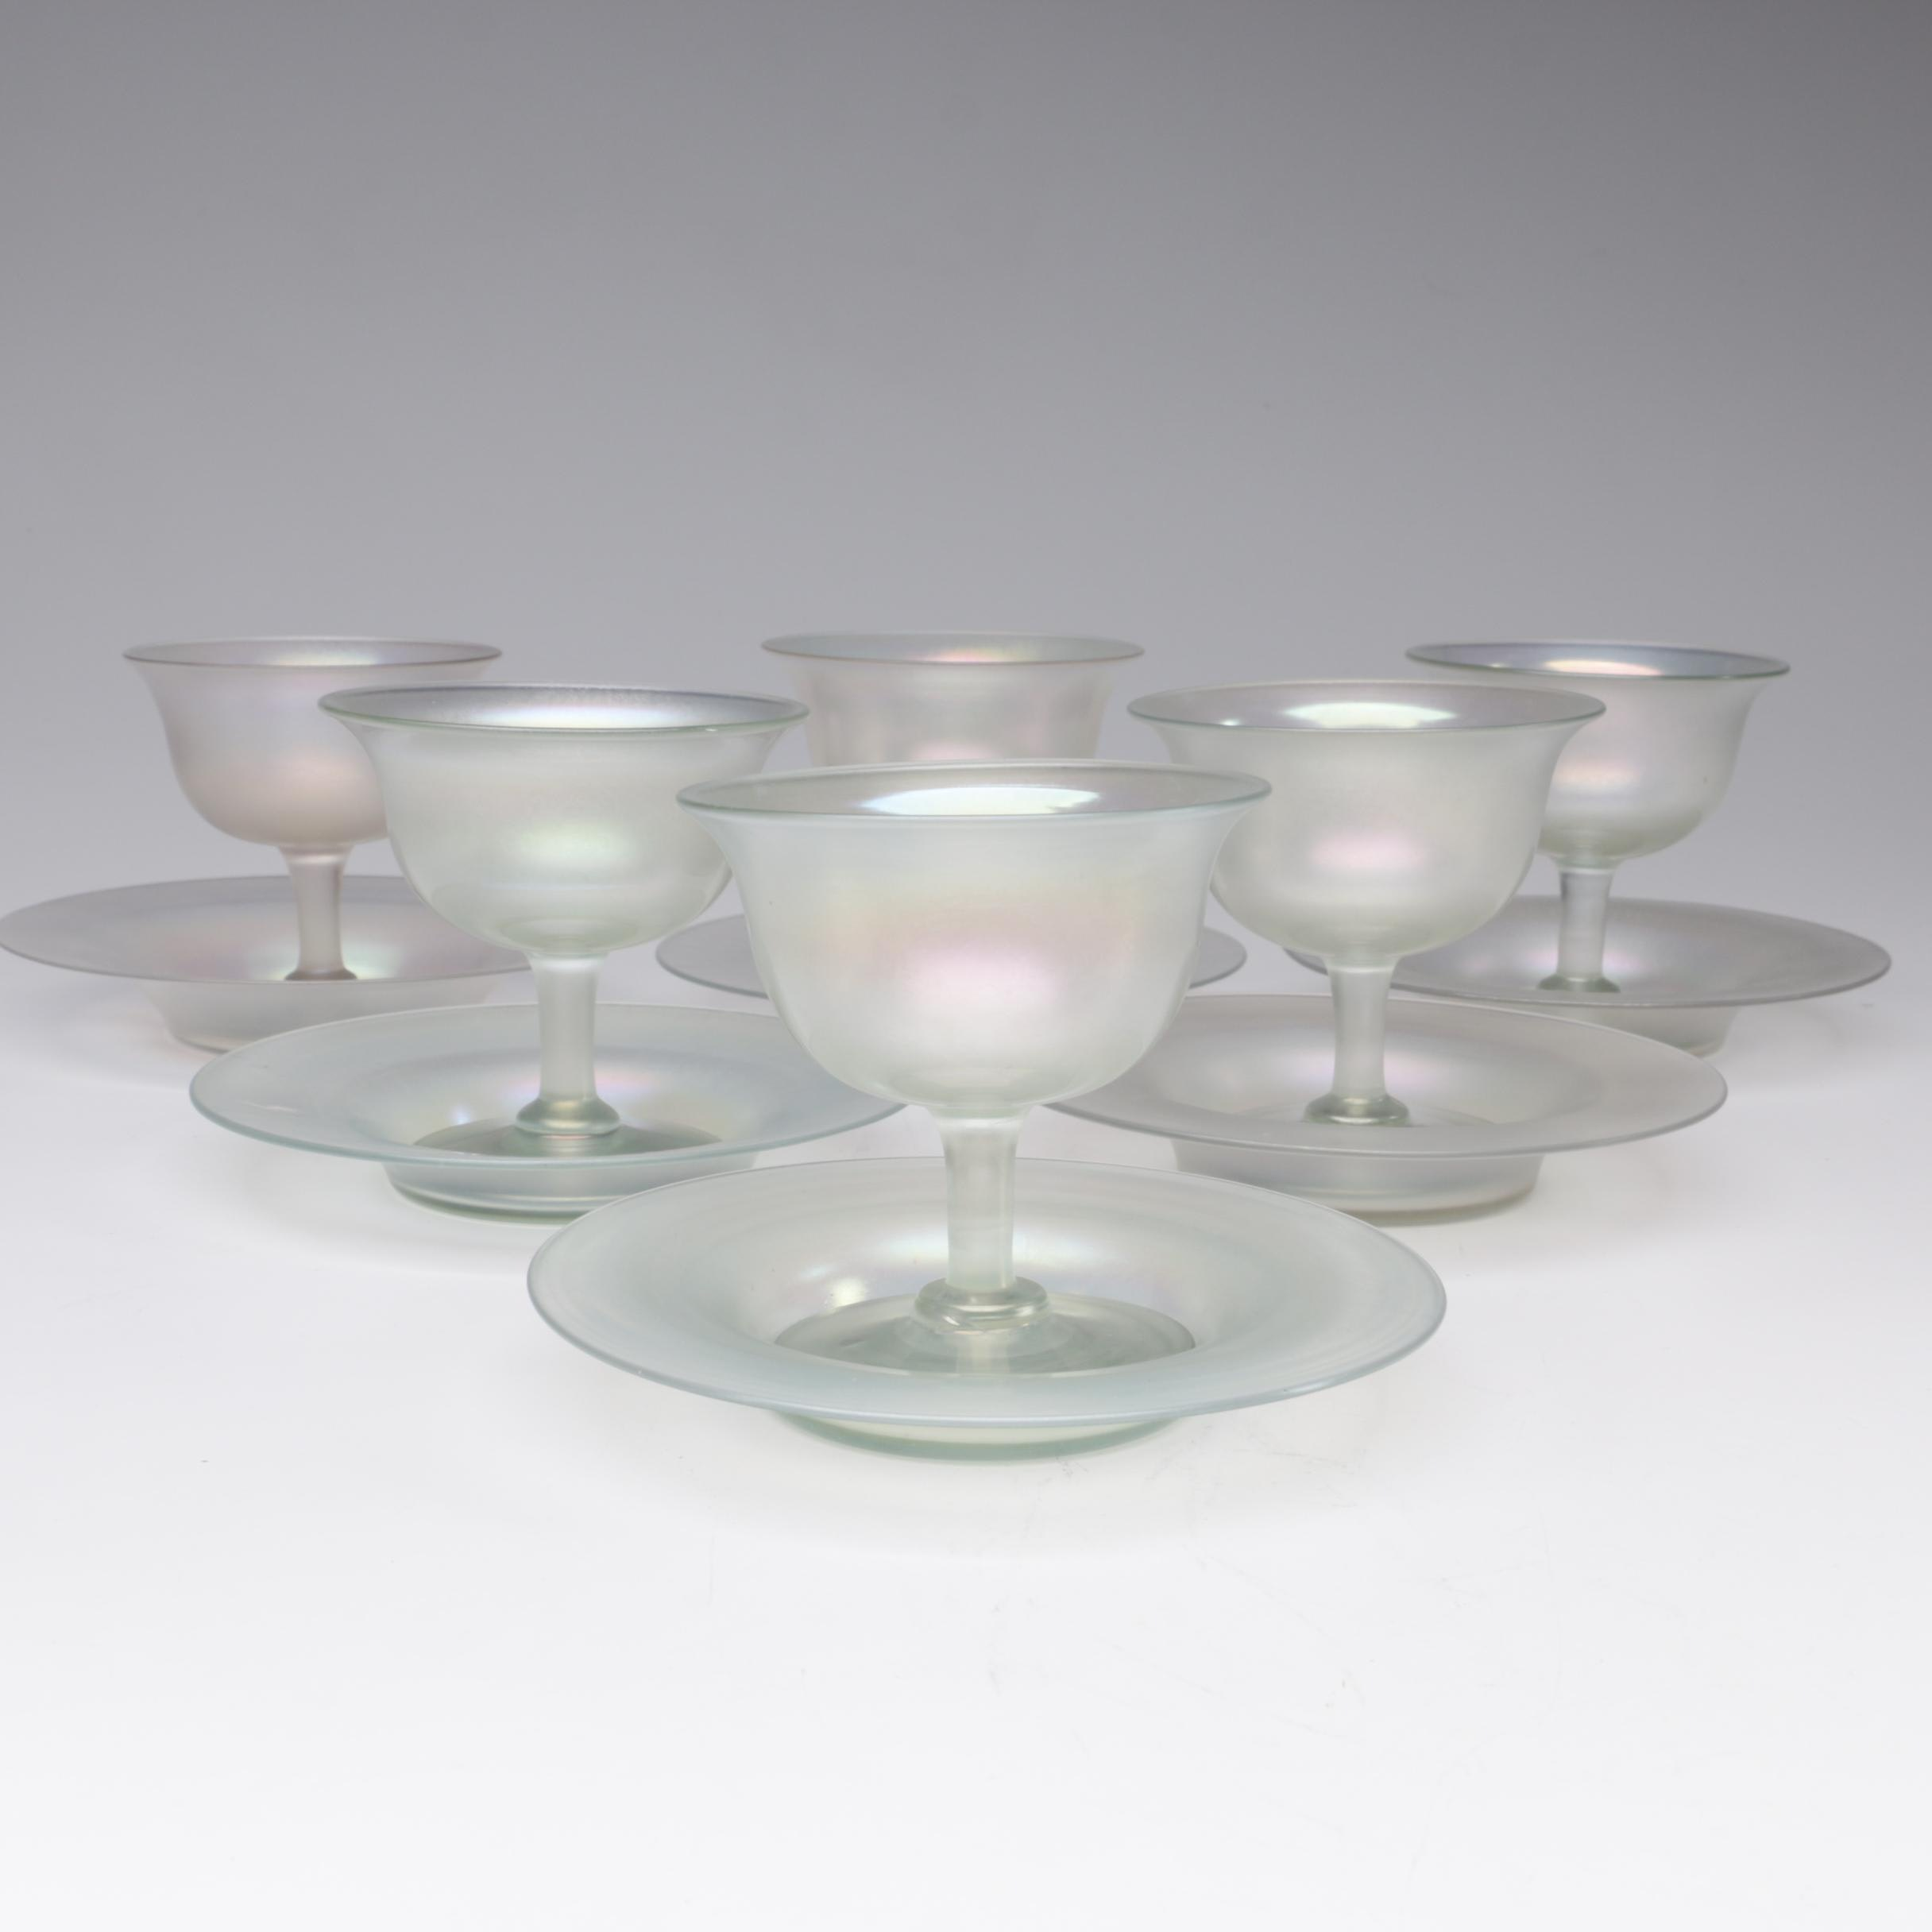 Steuben Verre de Soie Art Glass Sherbets with Underplates, Early 20th Century